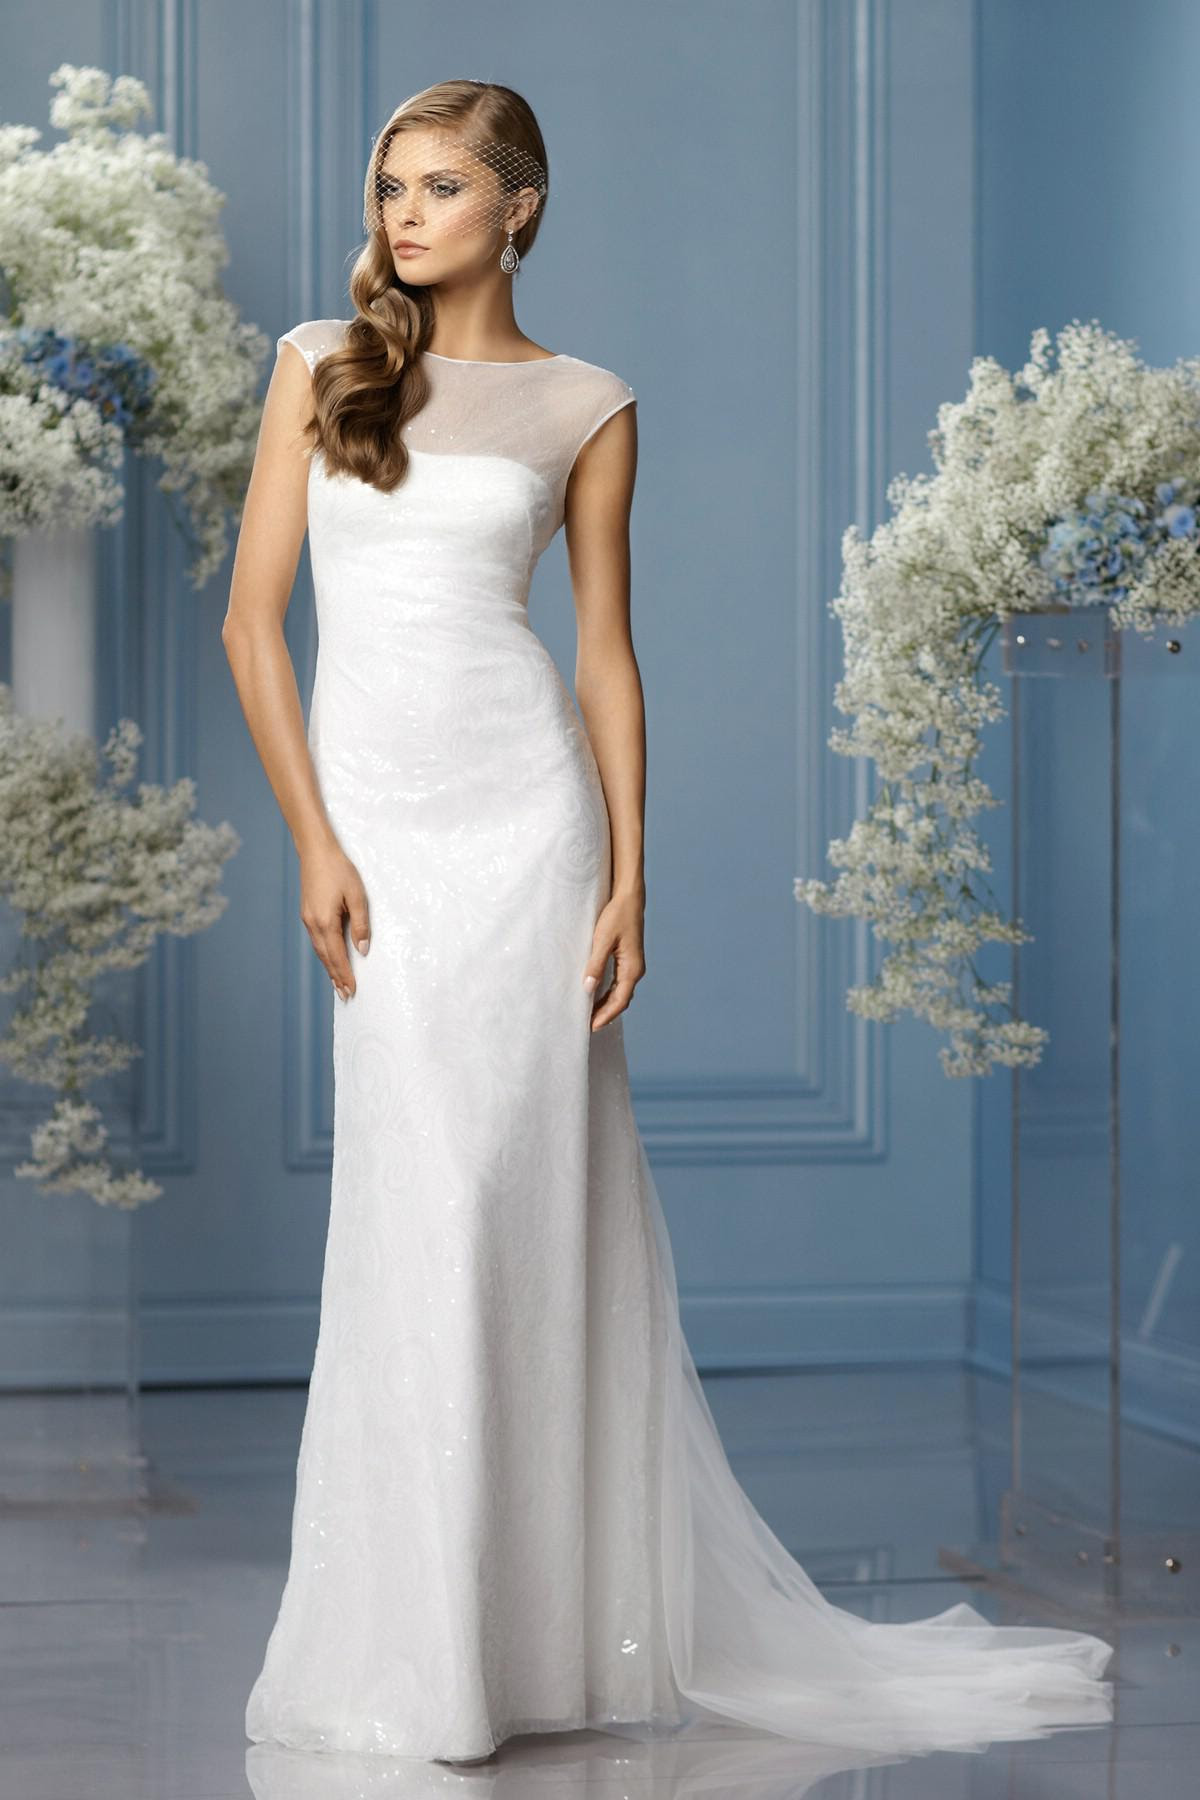 Bridal Gowns: contemporary bridal gowns